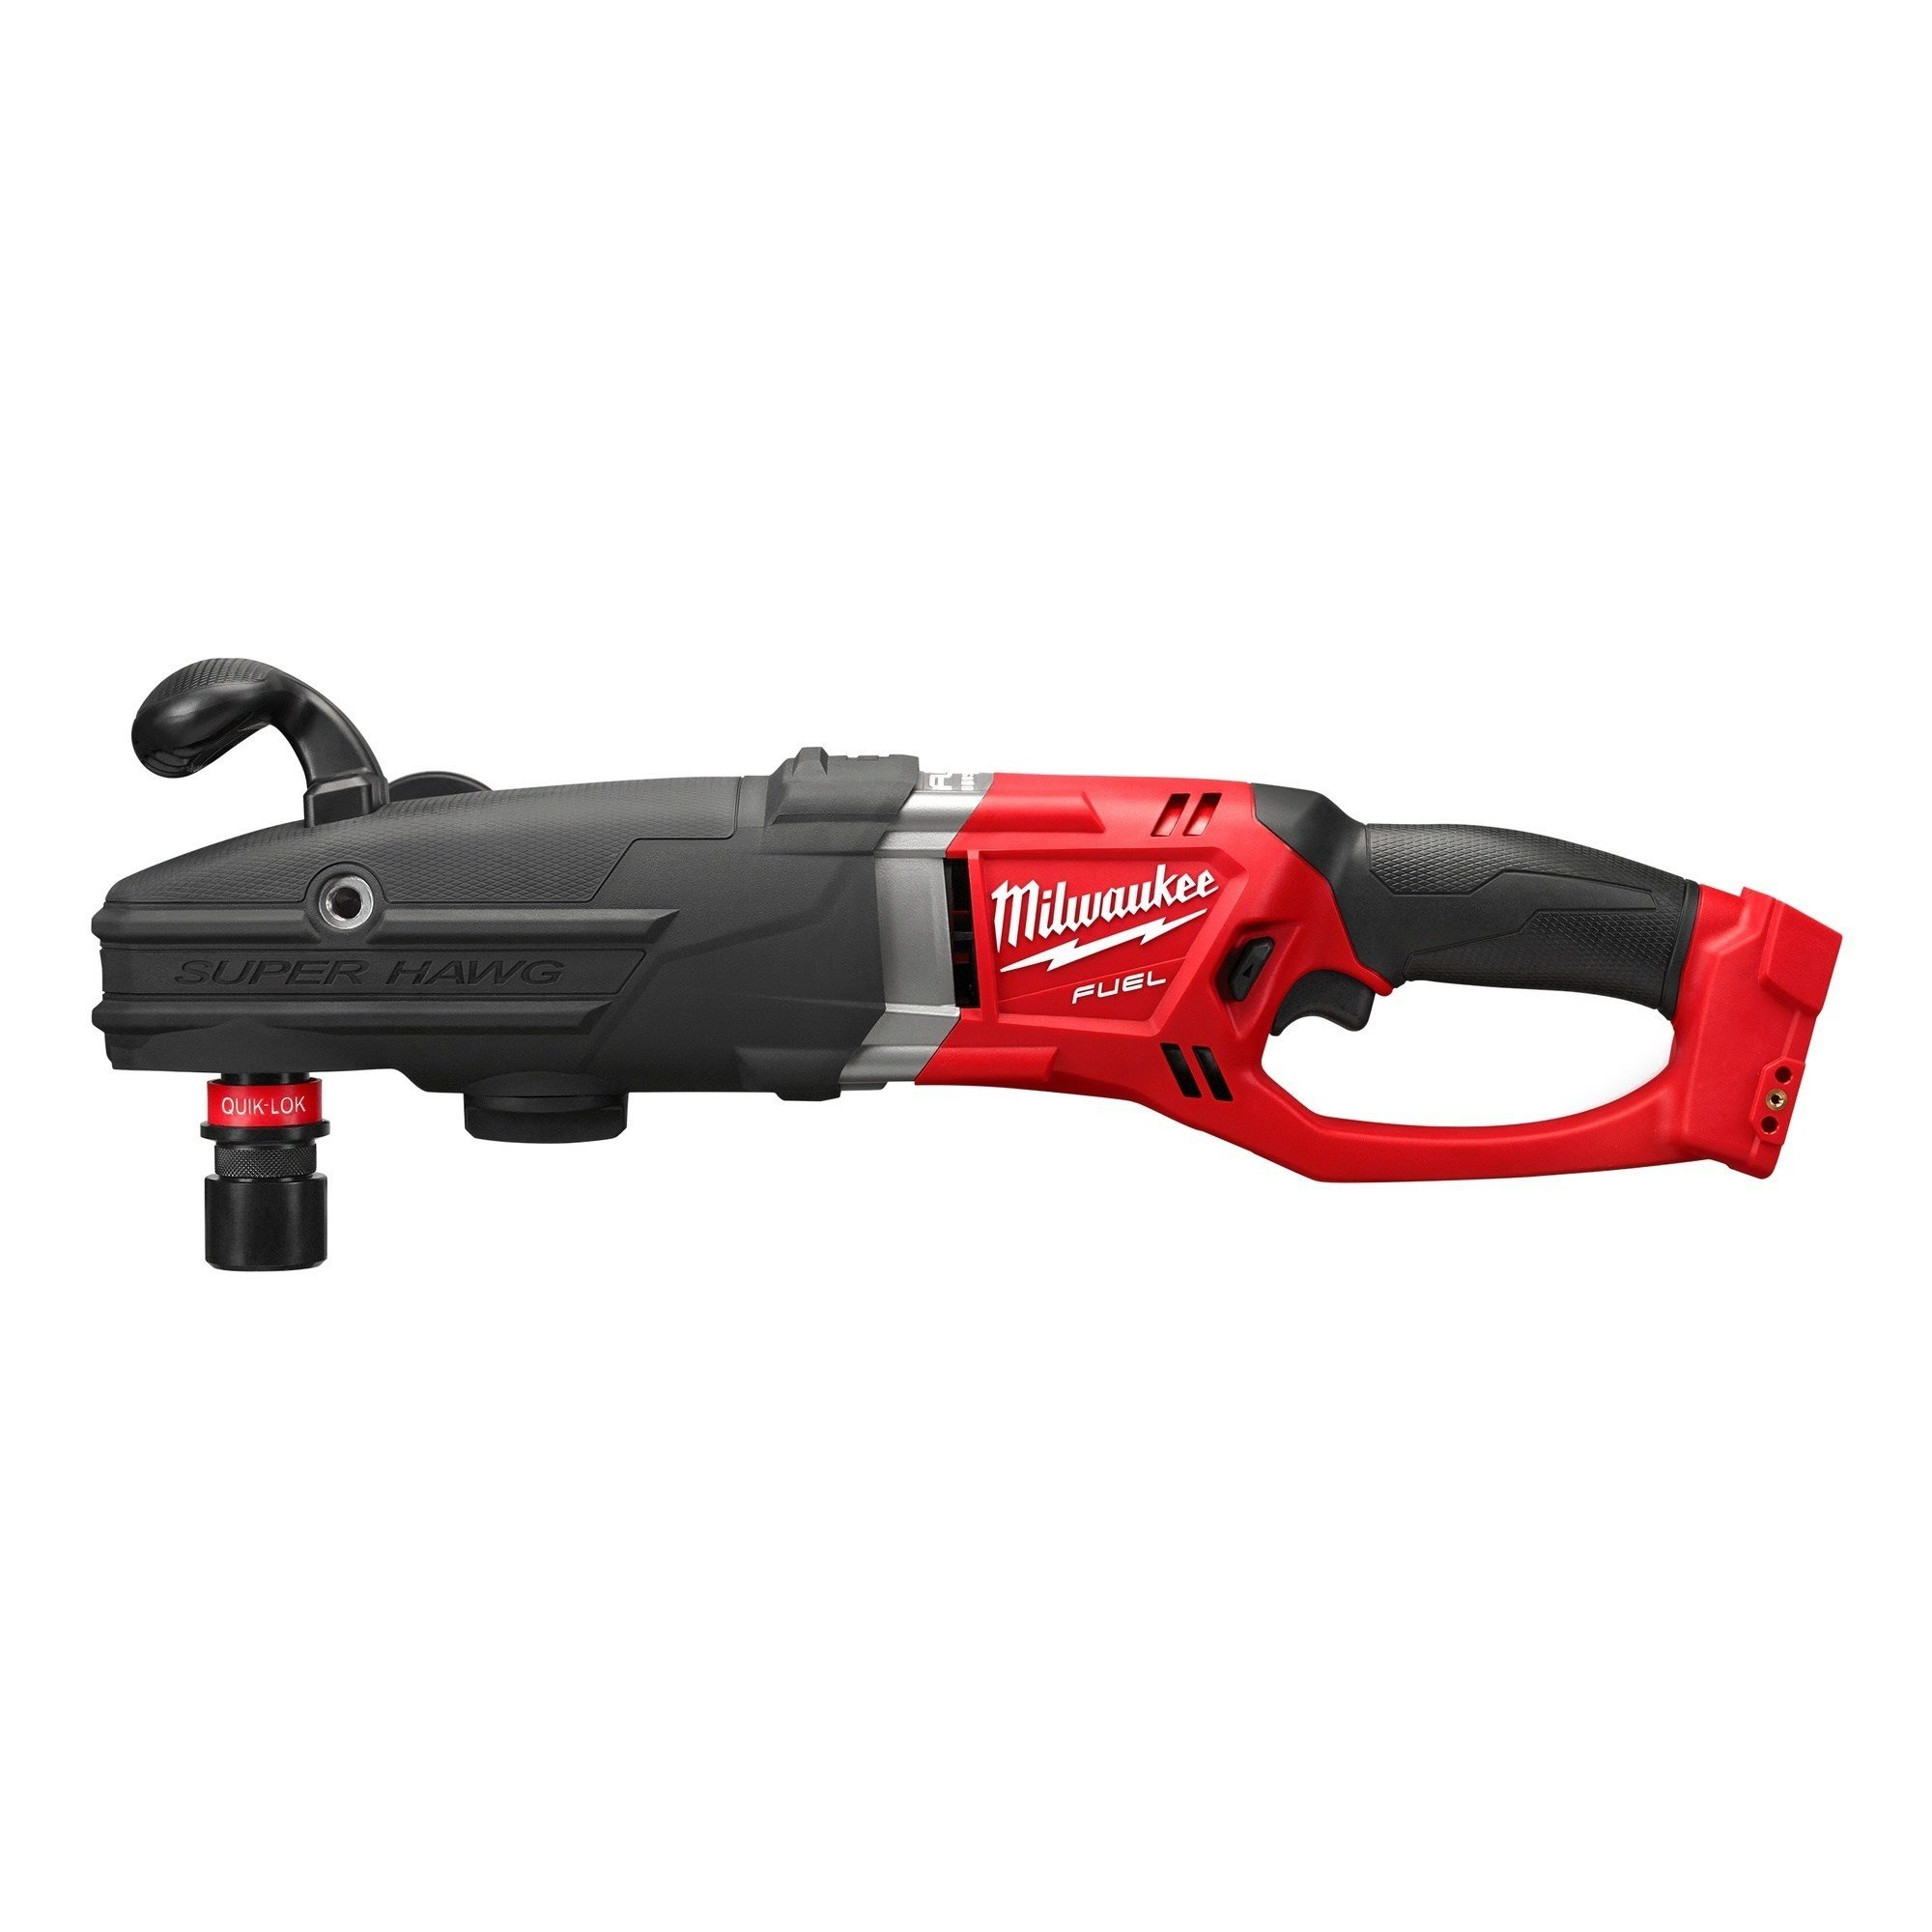 Milwaukee® M18 FUEL™ SUPER HAWG® VRTÁ 152MM OTVORY